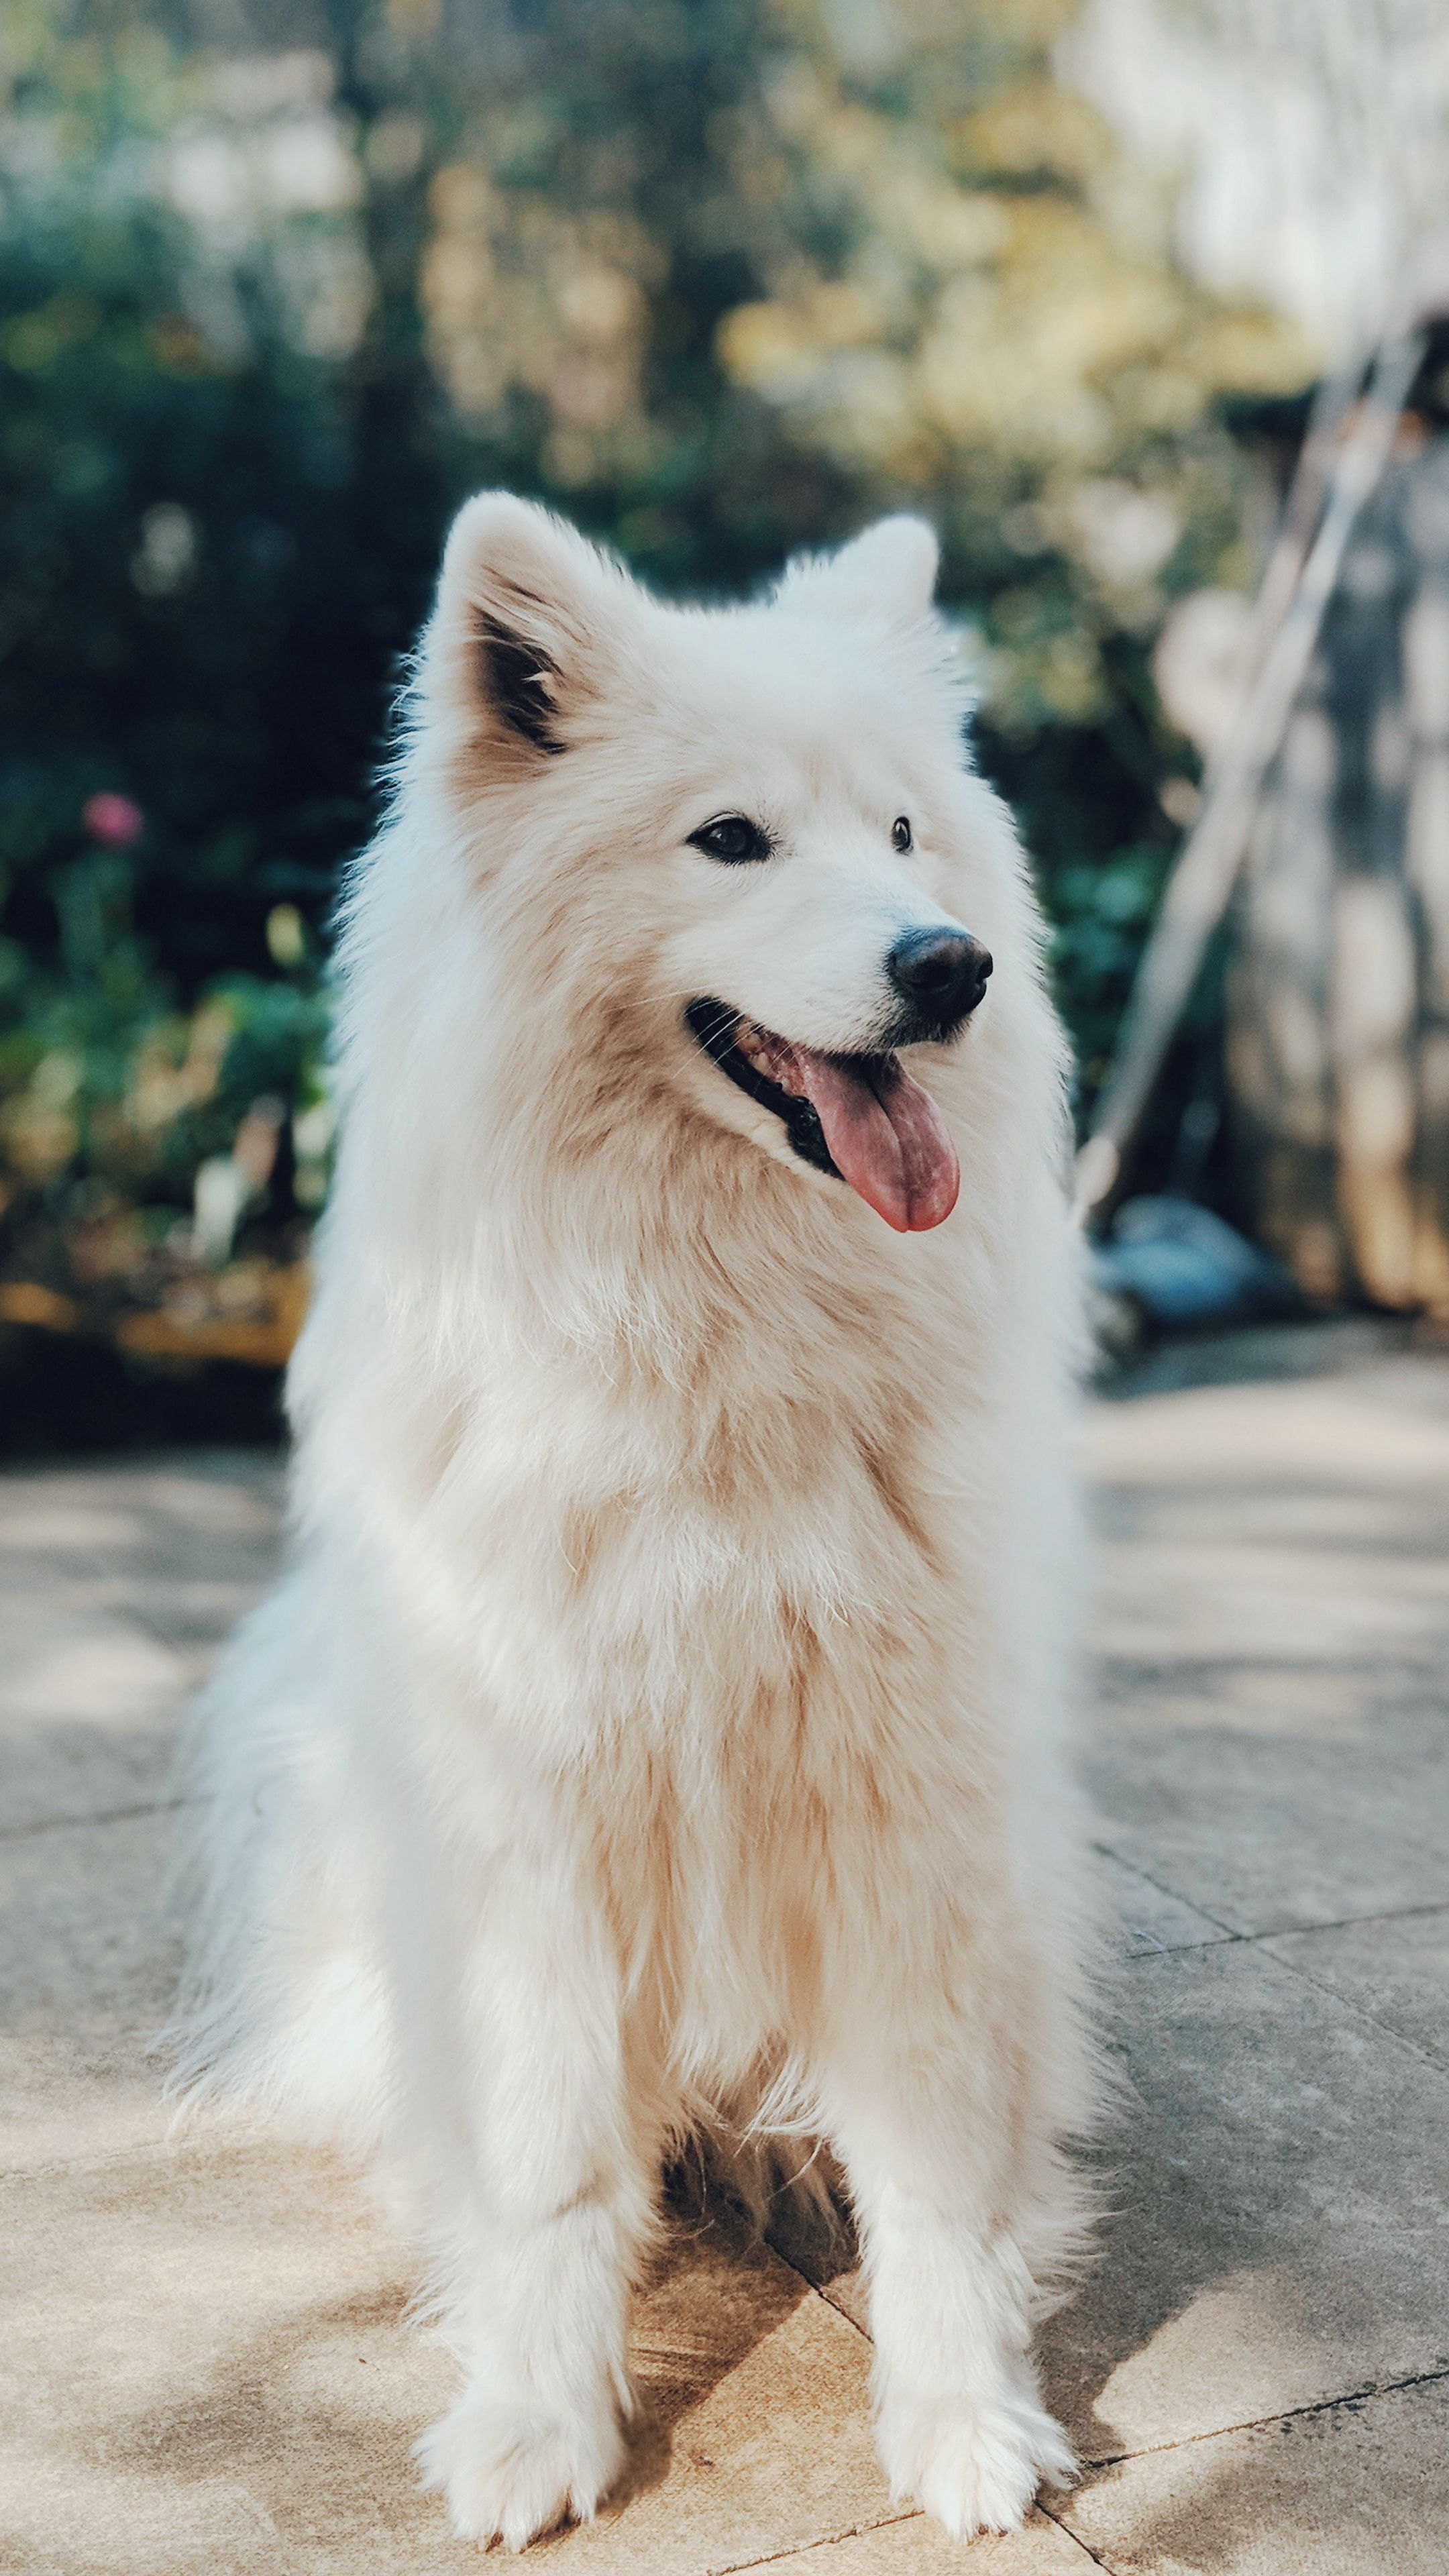 Animals Dog White Fluffy Wallpapers Hd 4k Background For Android Dogs Pet Dogs Fluffy Dogs